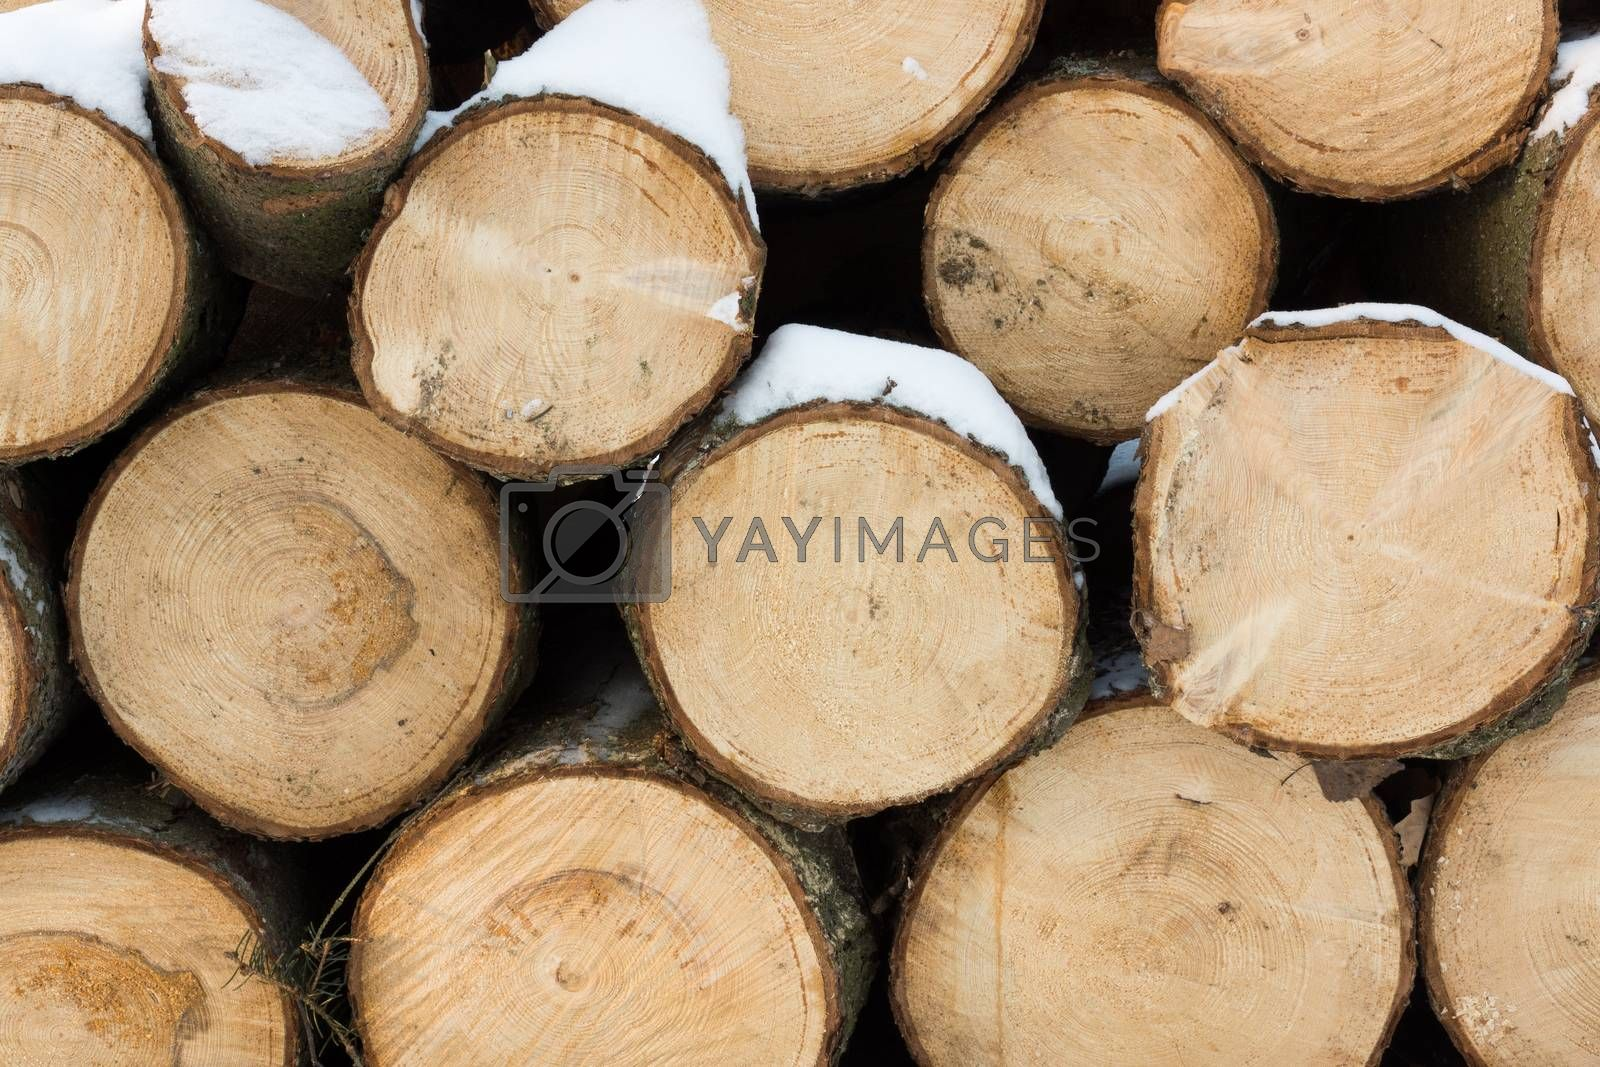 The photo shows logs of wood with snow